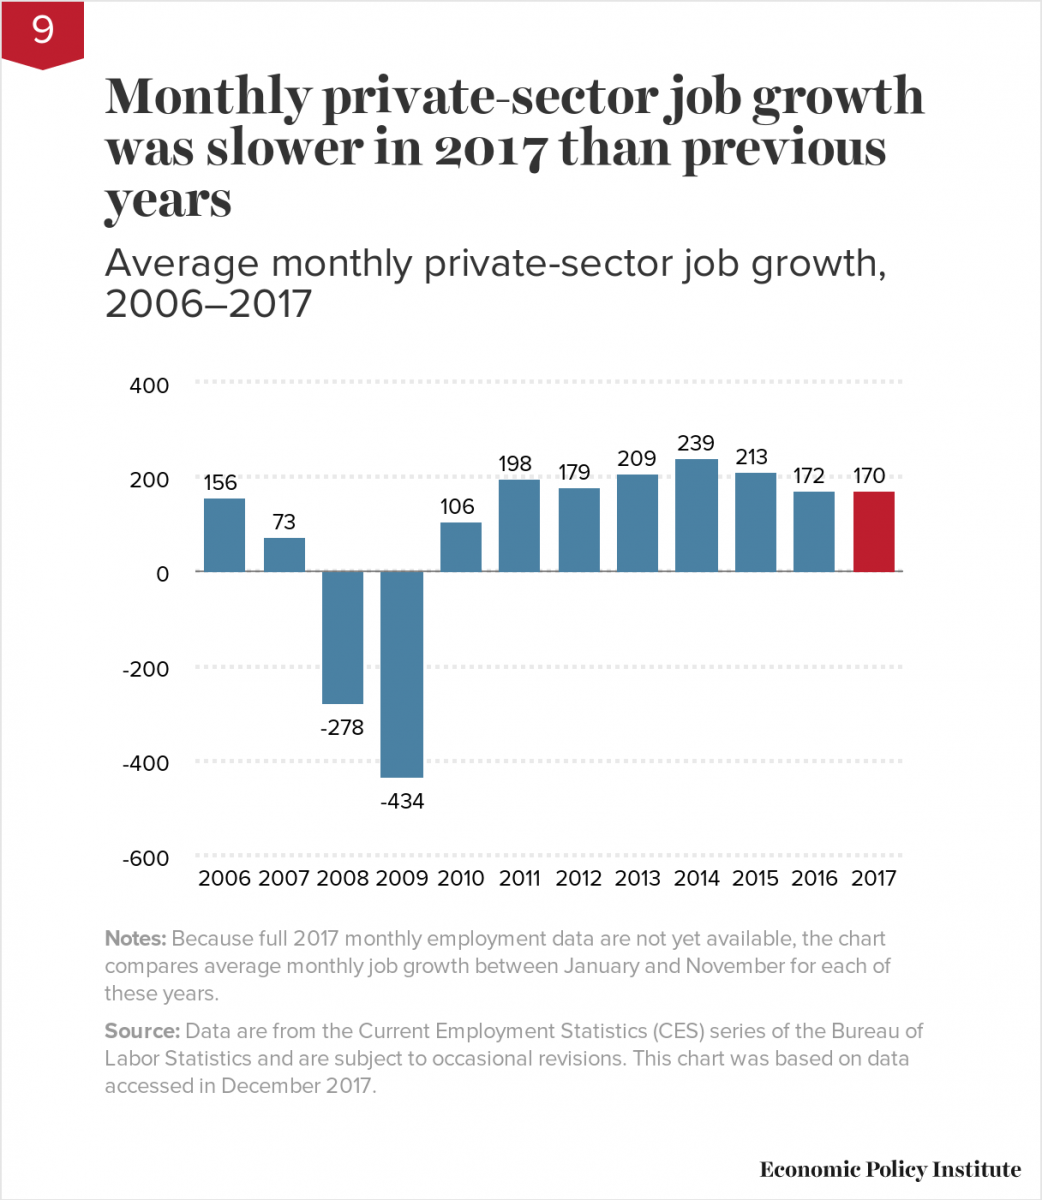 Monthly private-sector job growth was slower in 2017 than previous years